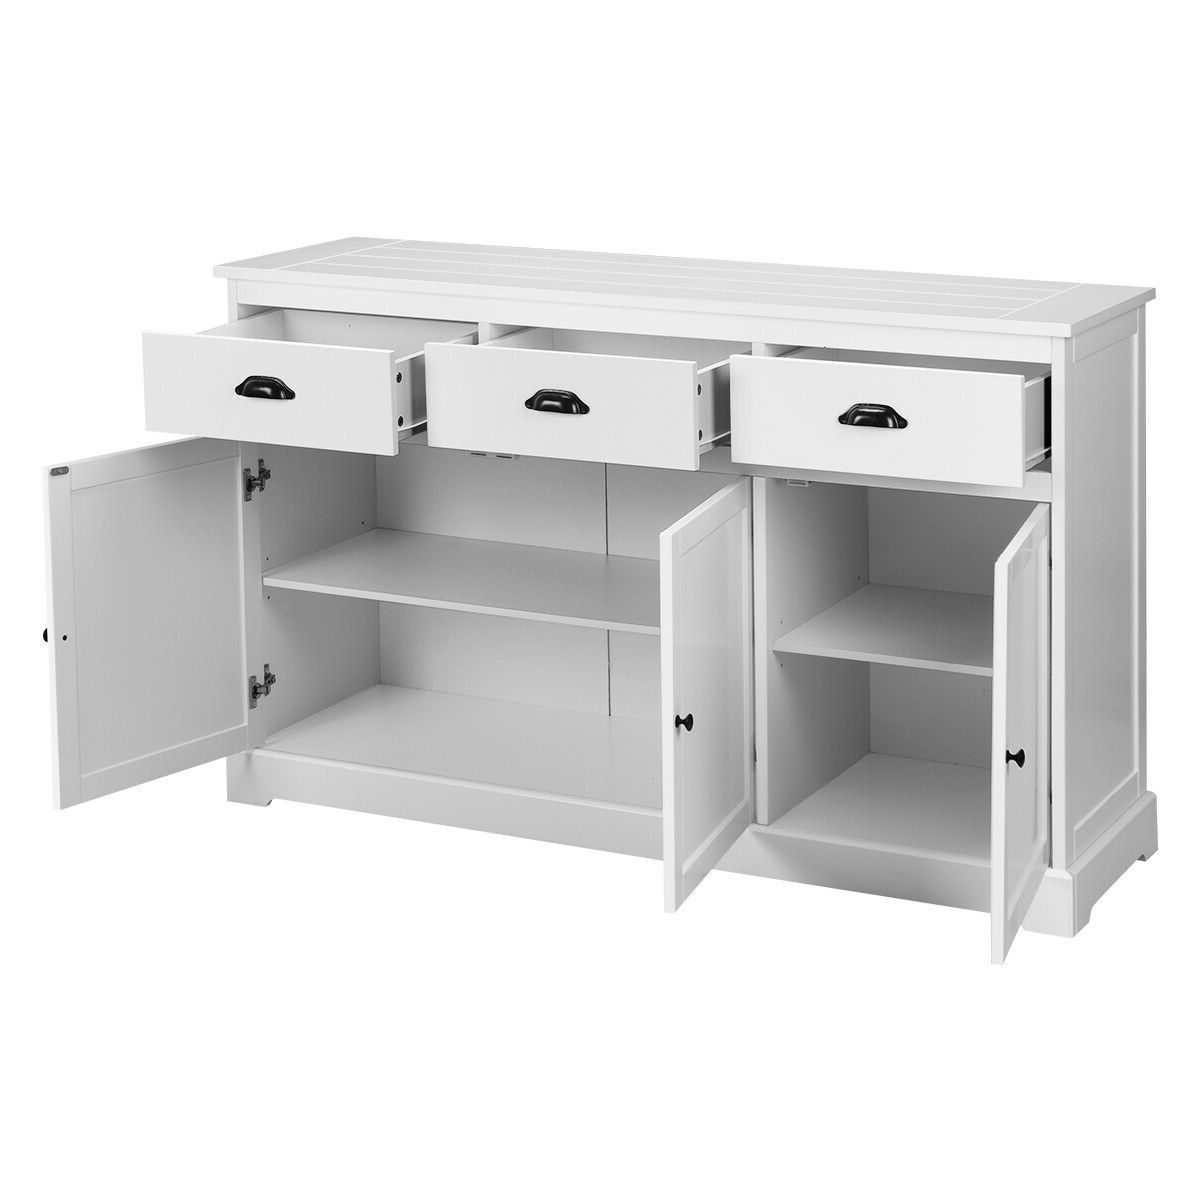 3 Drawers Console Table Sideboard Buffet Cabinet Within 3 Drawer Black Storage Buffets (View 1 of 20)